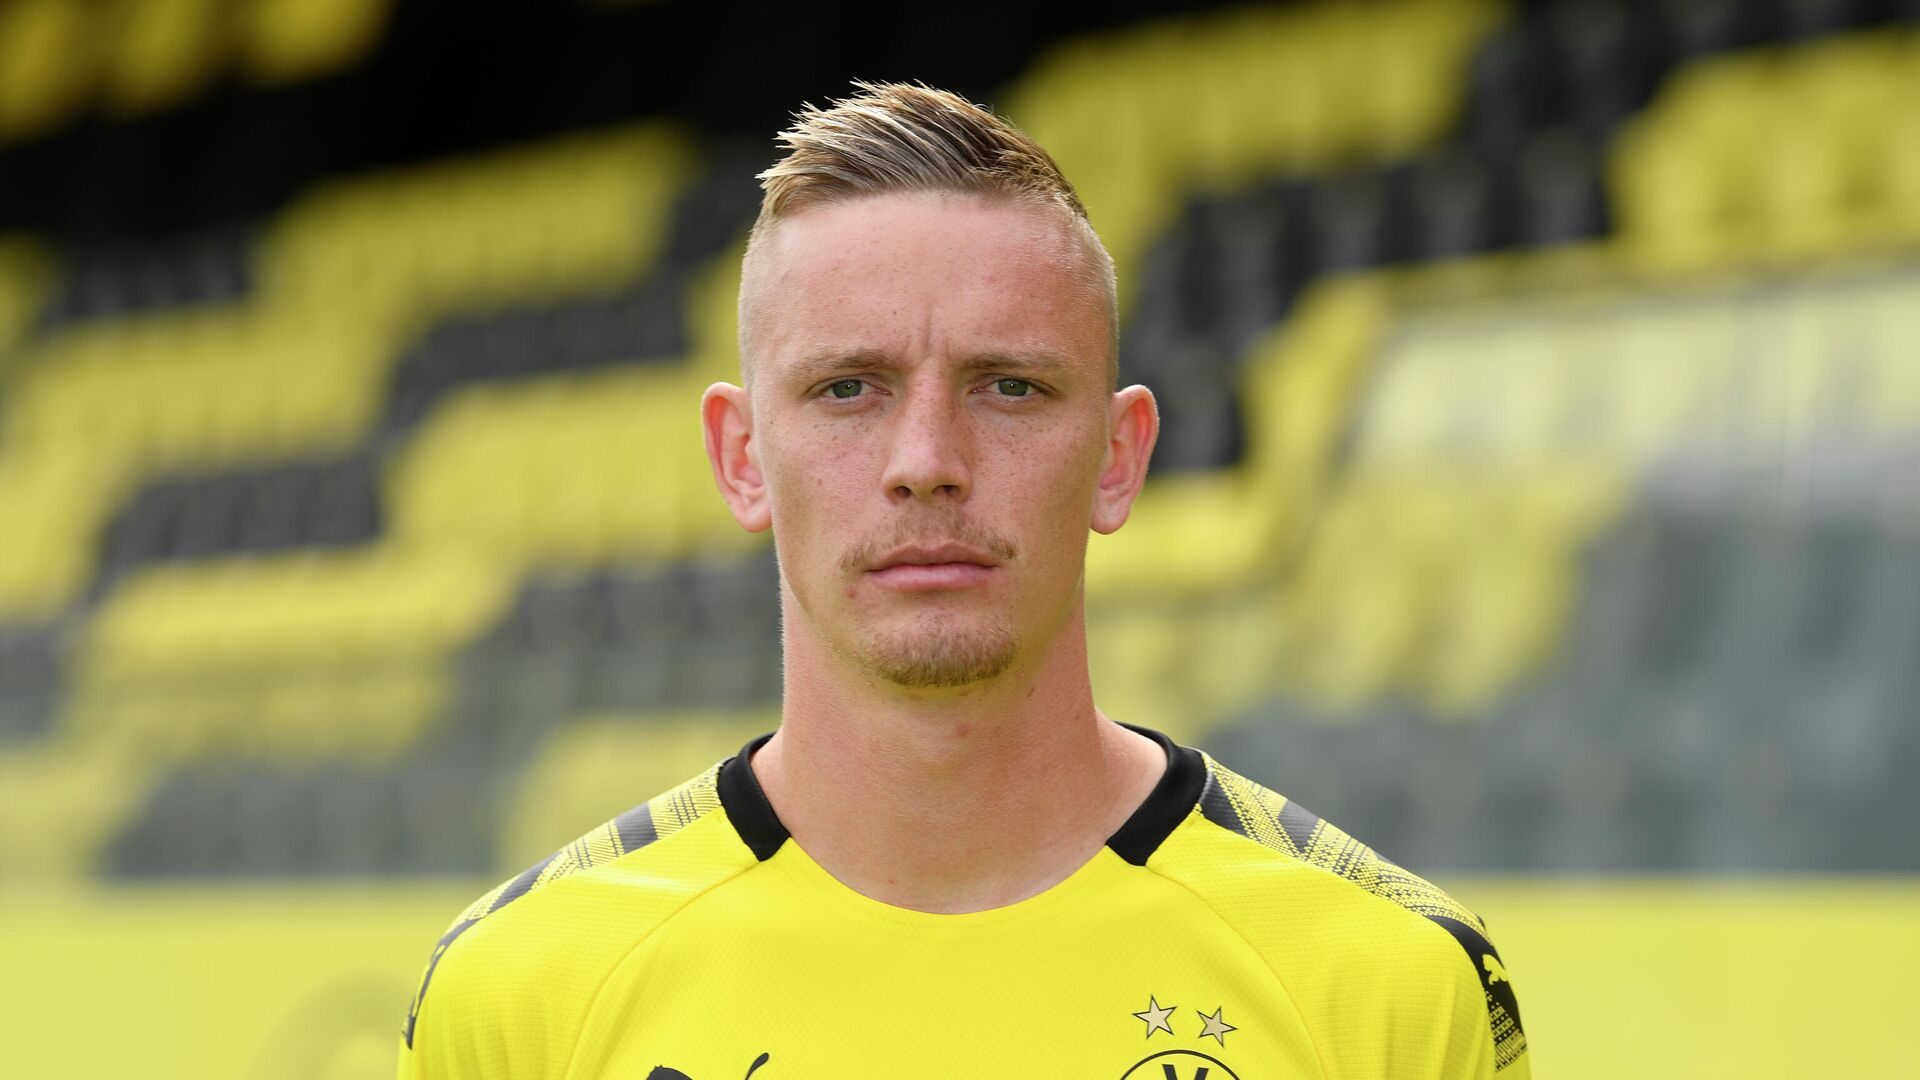 Dortmund's German forward Marius Wolf poses for a photo during the presentation of Borussia Dortmund's squad for the upcoming first Bundesliga season at their training ground in Dortmund, western Germany, on August 6, 2019. (Photo by INA FASSBENDER / POOL / AFP) - РИА Новости, 1920, 02.10.2020